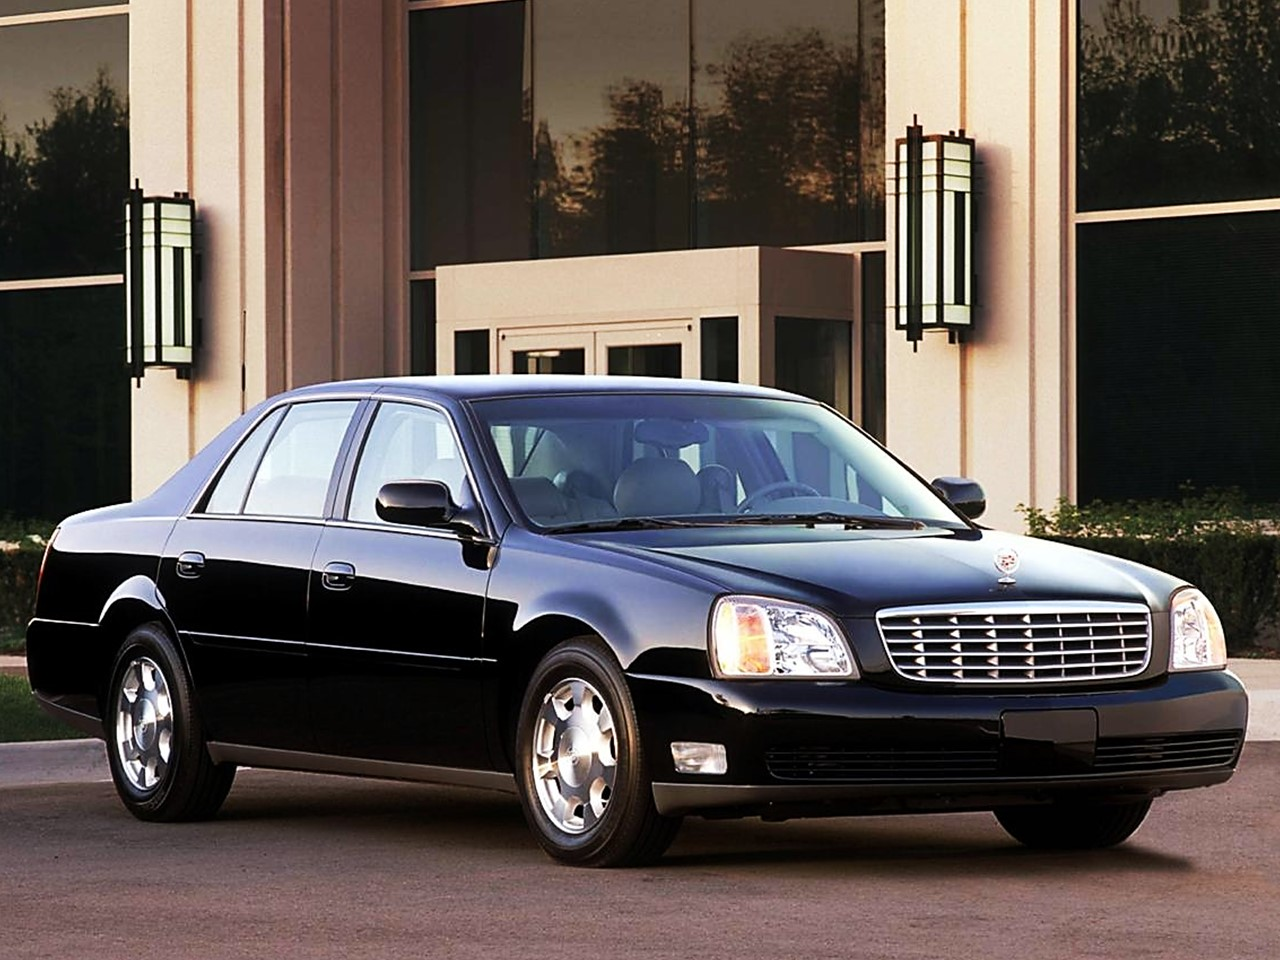 2002 Cadillac Deville The Last Of The Big Guns